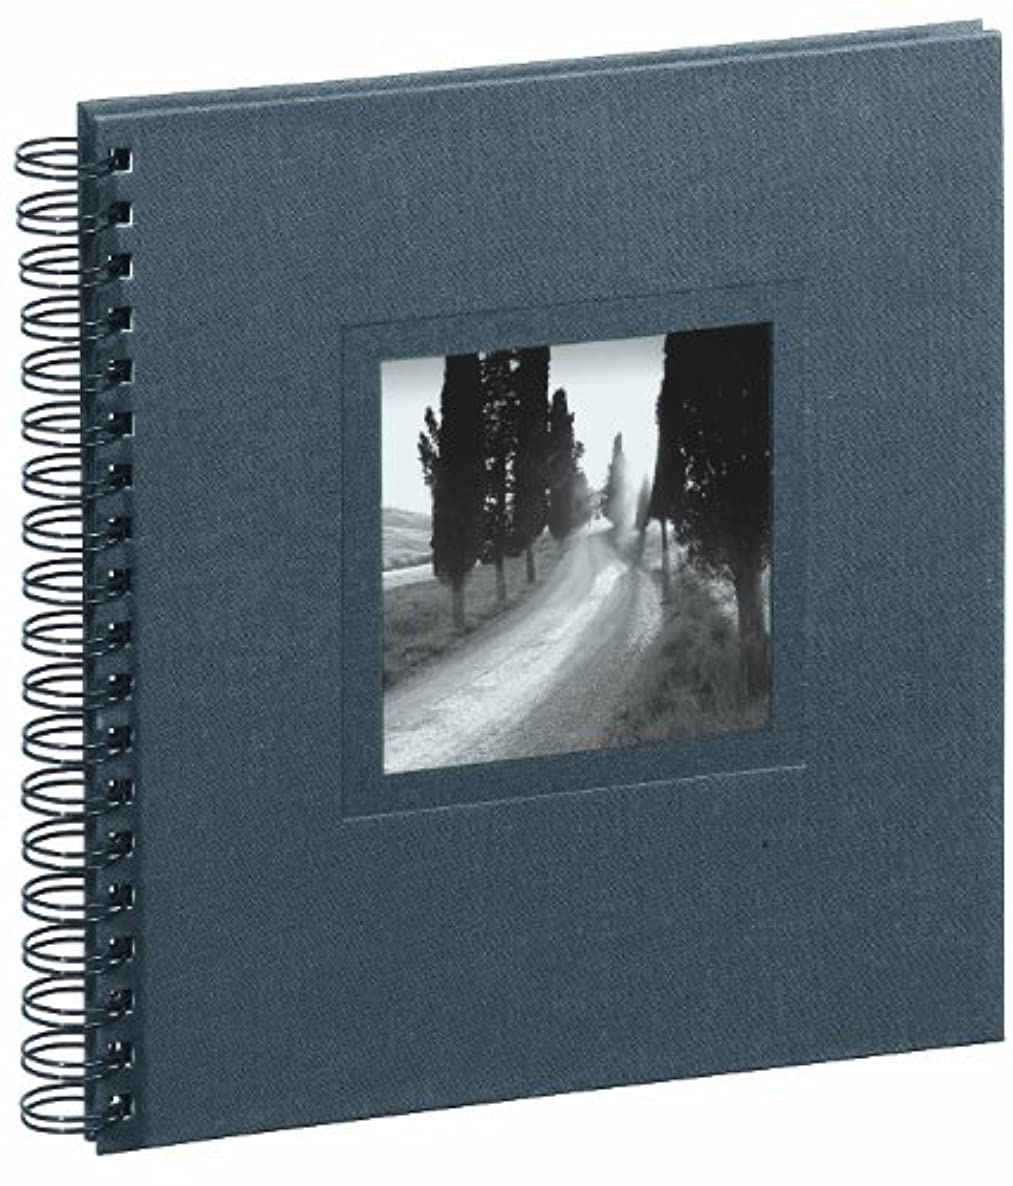 Pagna Ways/Tuscany 12173-10 Spiral Album 240 x 250 mm Linen Cover with Card / 50 Pages Black Mounting Paper